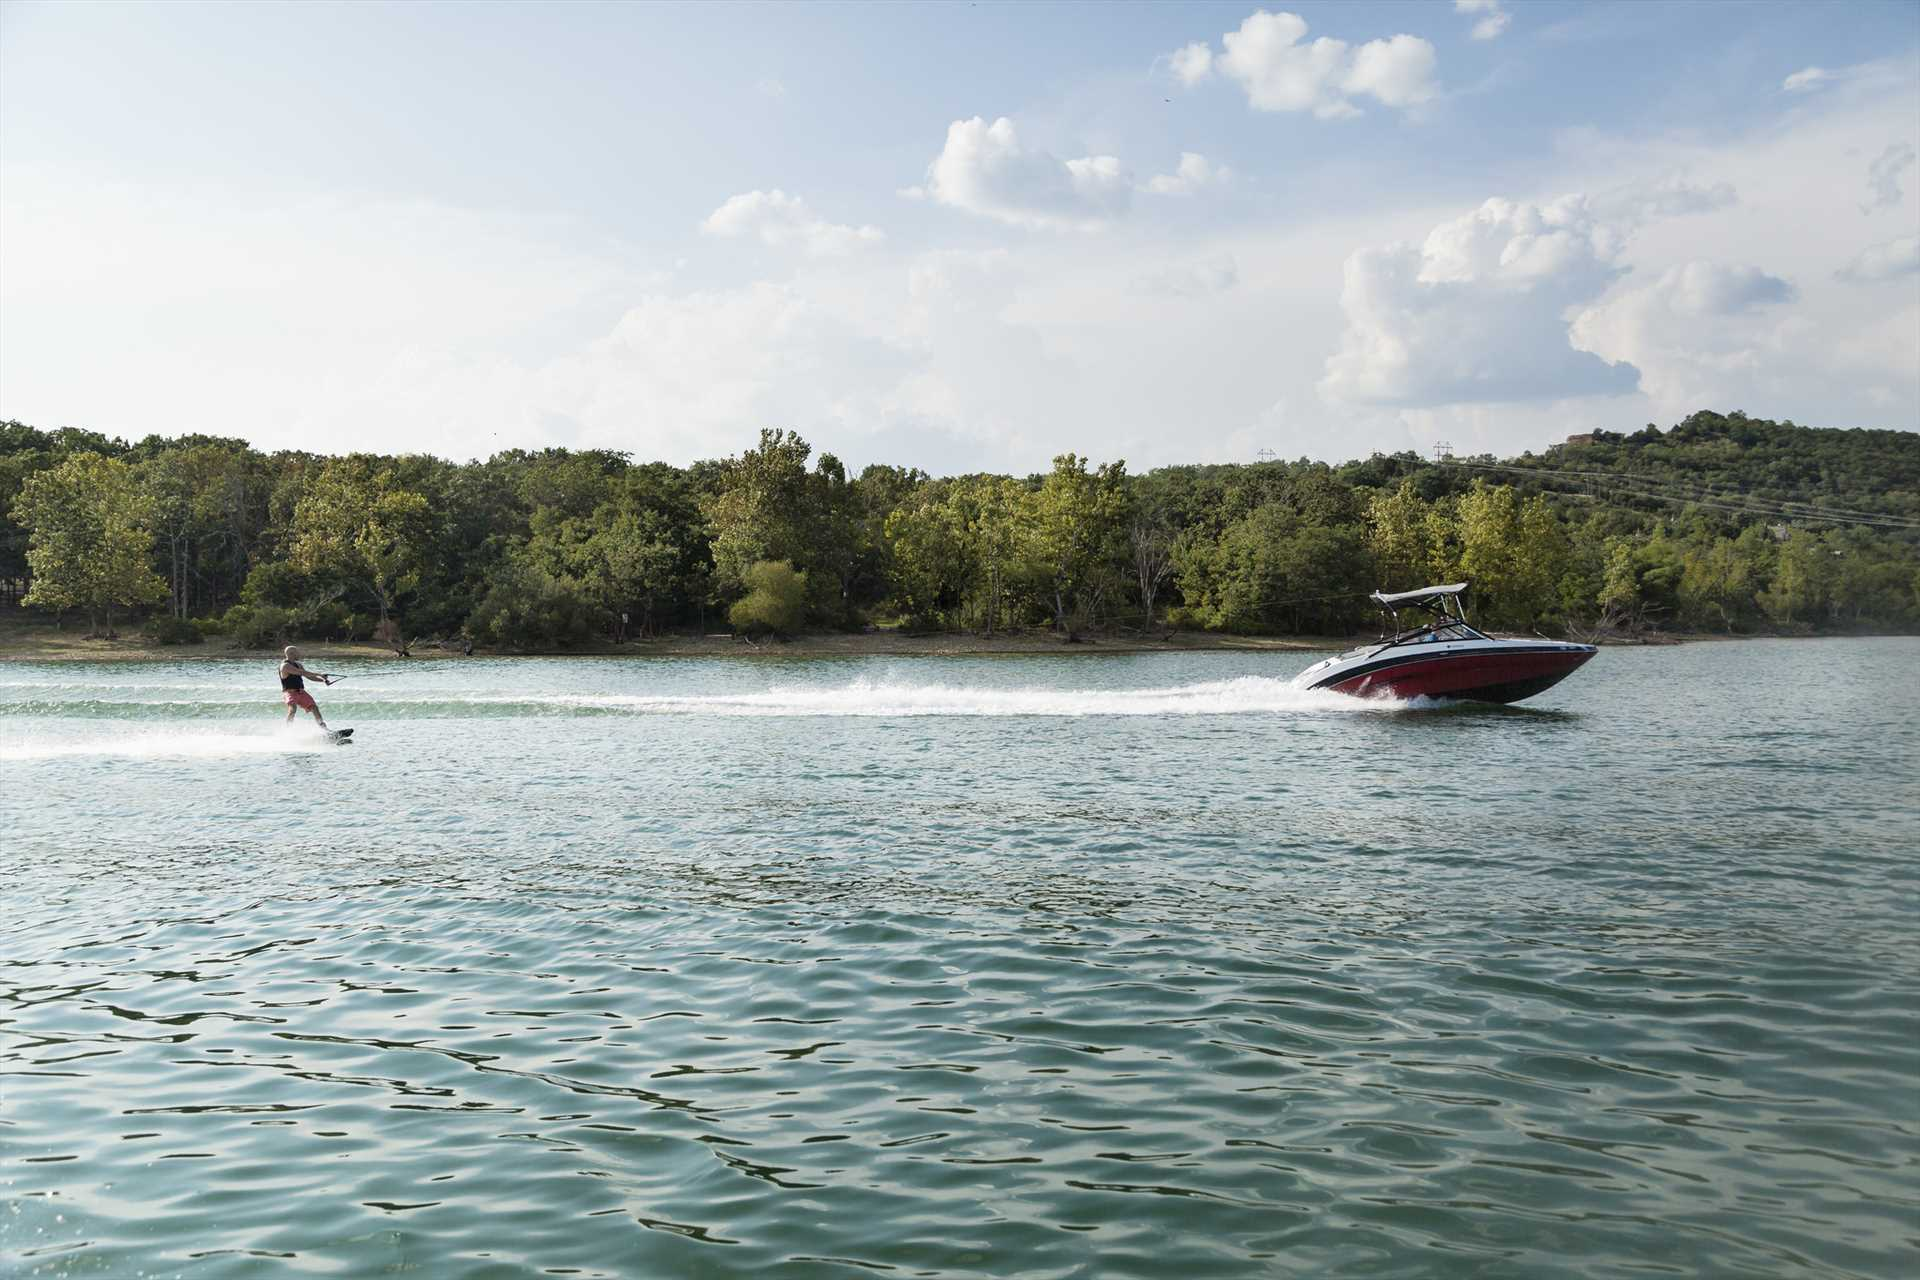 Relax on the boat or enjoy water sports on beautiful Table R